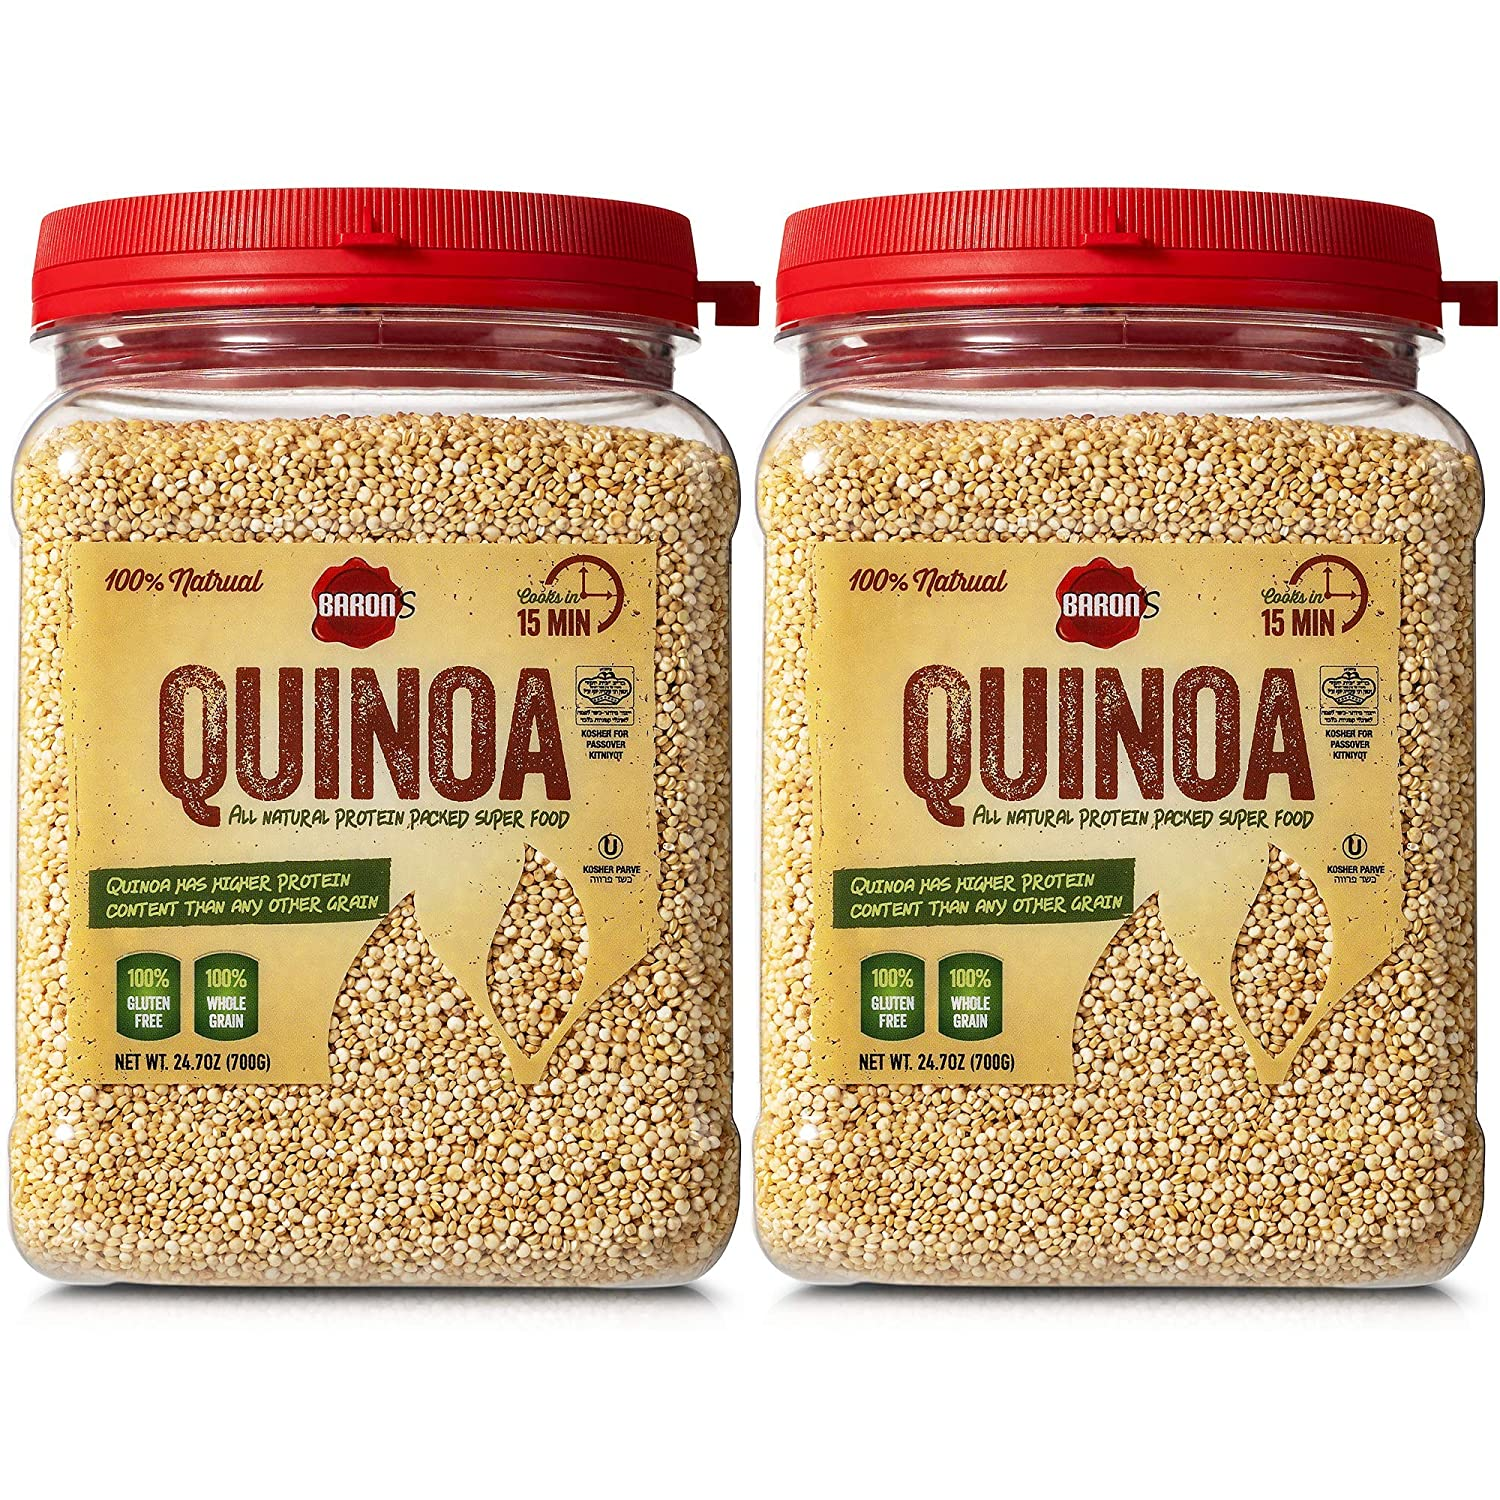 Baron's Whole Grain Gluten Free Quinoa | 100% All Natural Raw Brown Superfood Seeds Cook in 15 Minutes! | Kosher for Passover (Kitniyot), Non GMO, High Protein, Fiber & Iron | [2] 24.7oz Bulk Jars